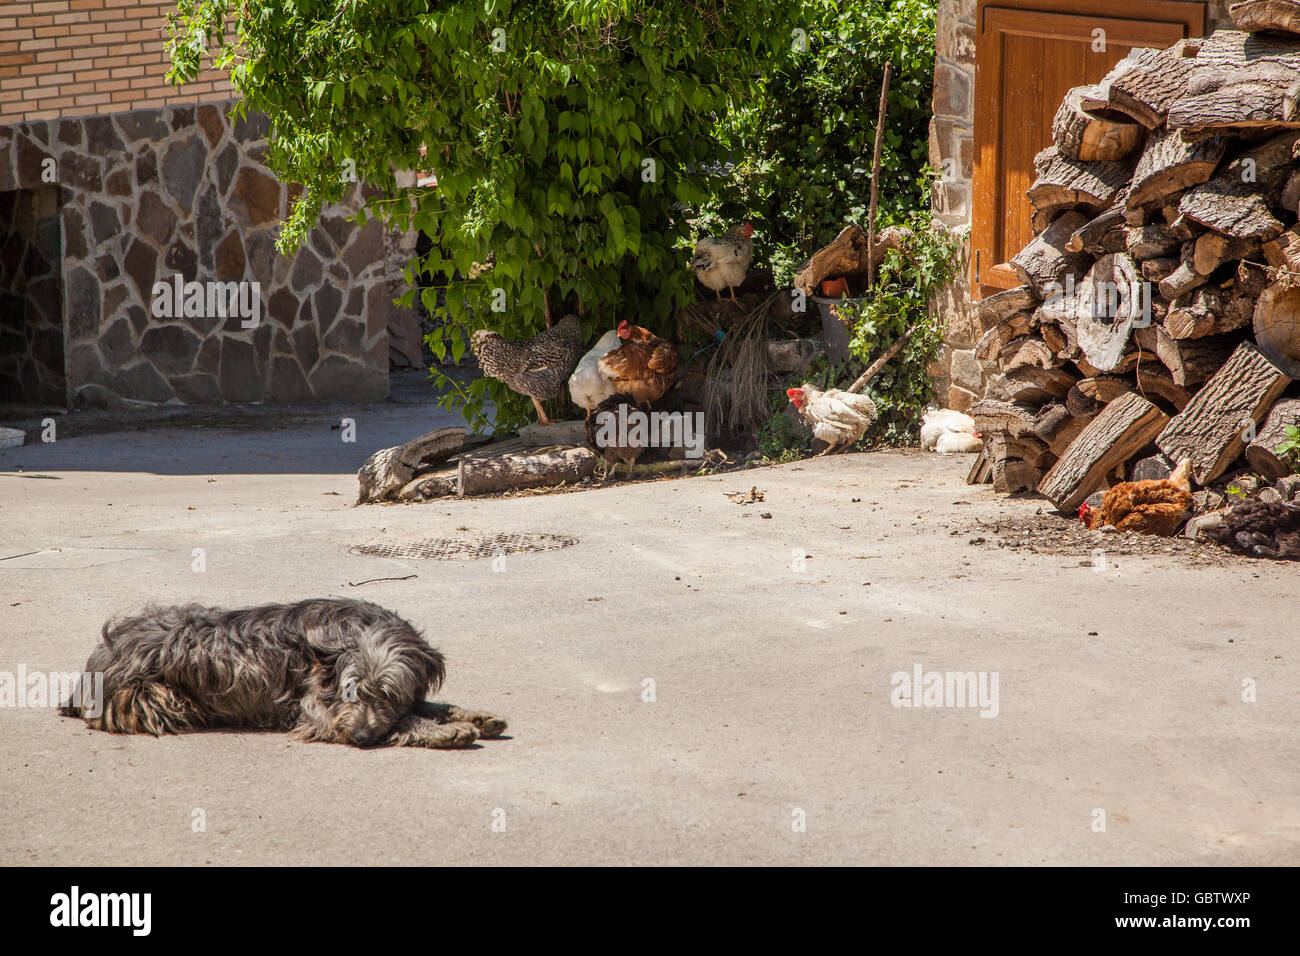 Dog asleep in a farmyard with Chickens running free by log pile - Stock Image